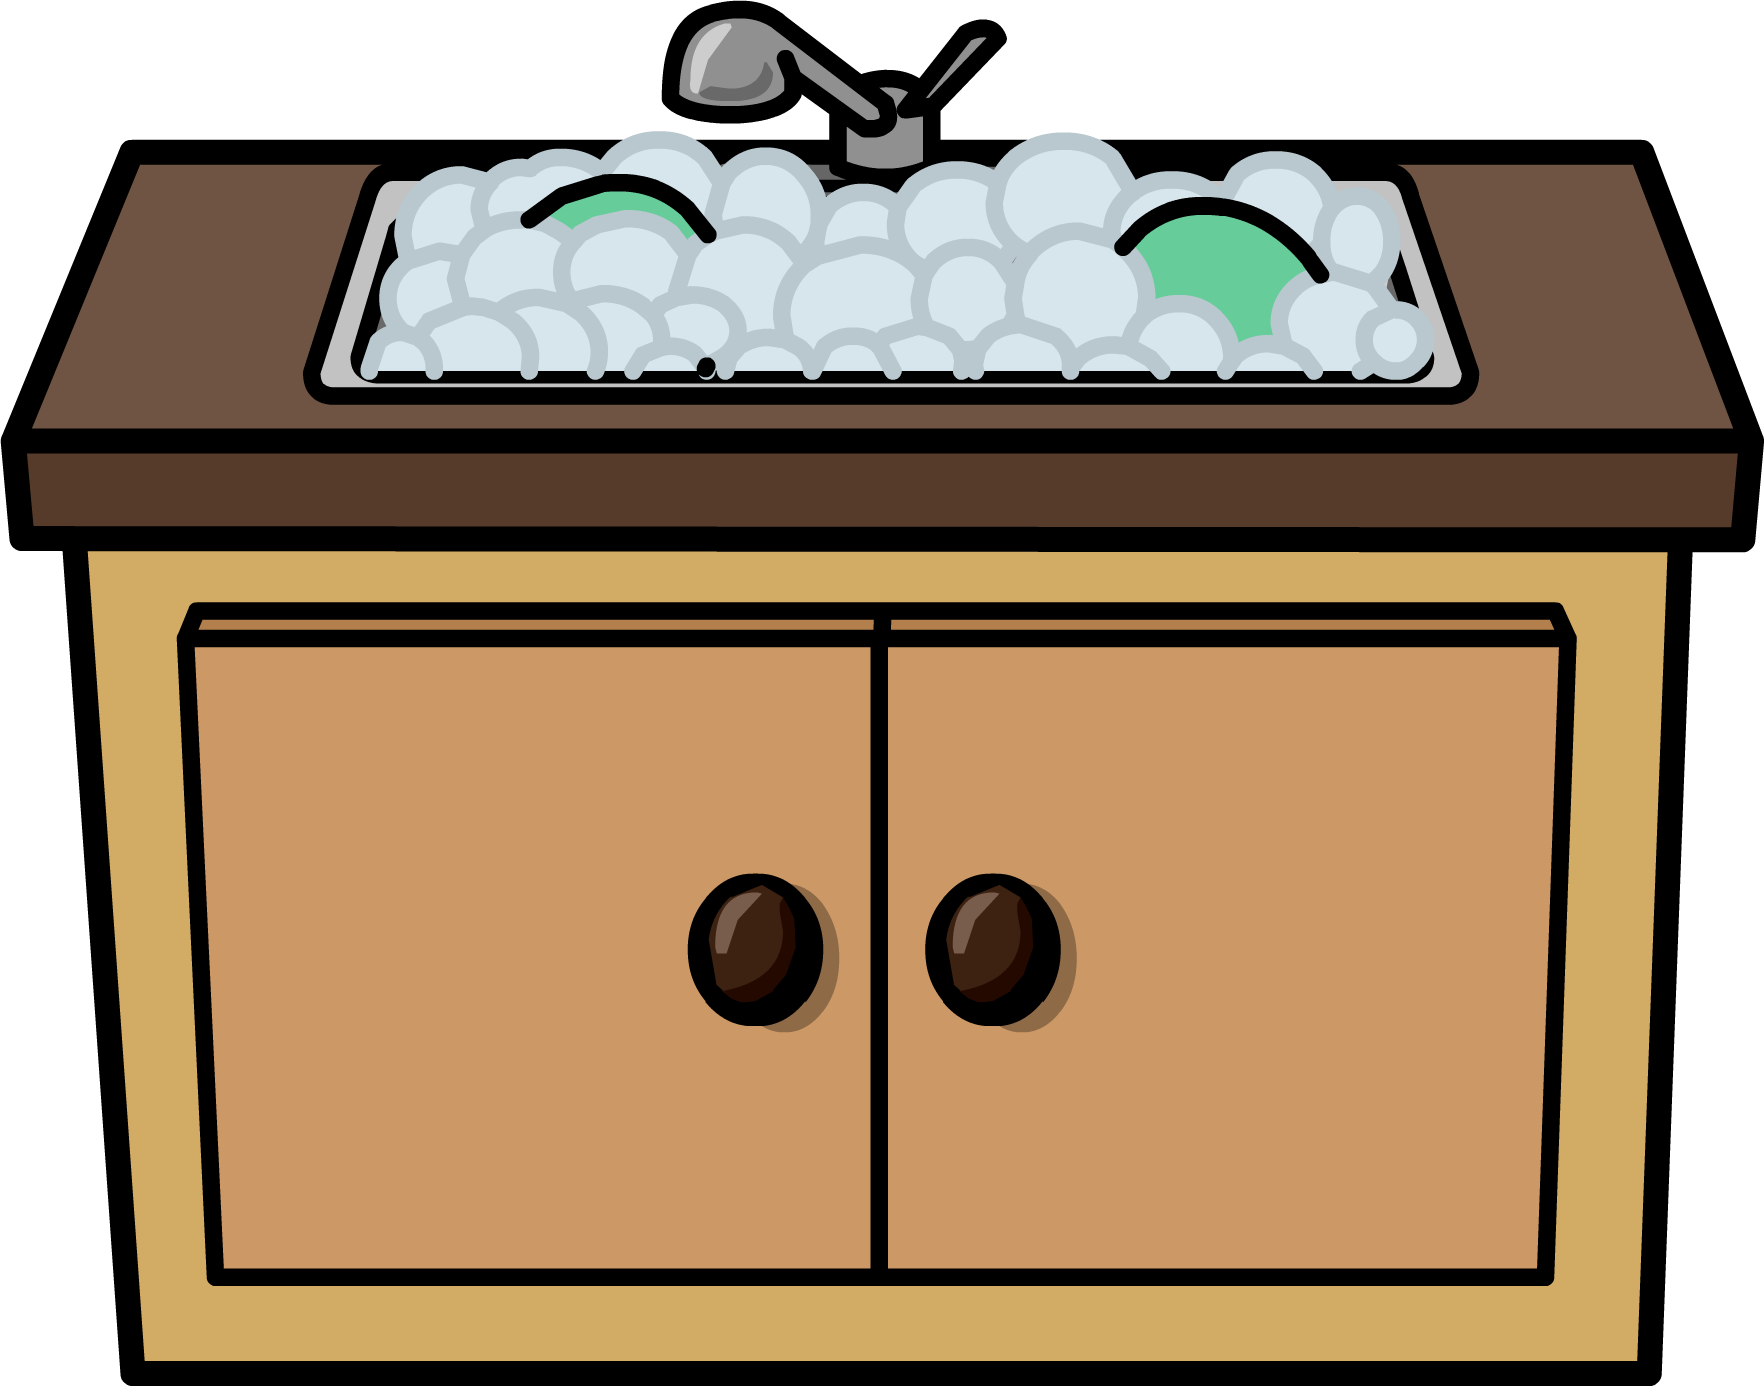 Win clipart kitchen window. Image sink sprite png